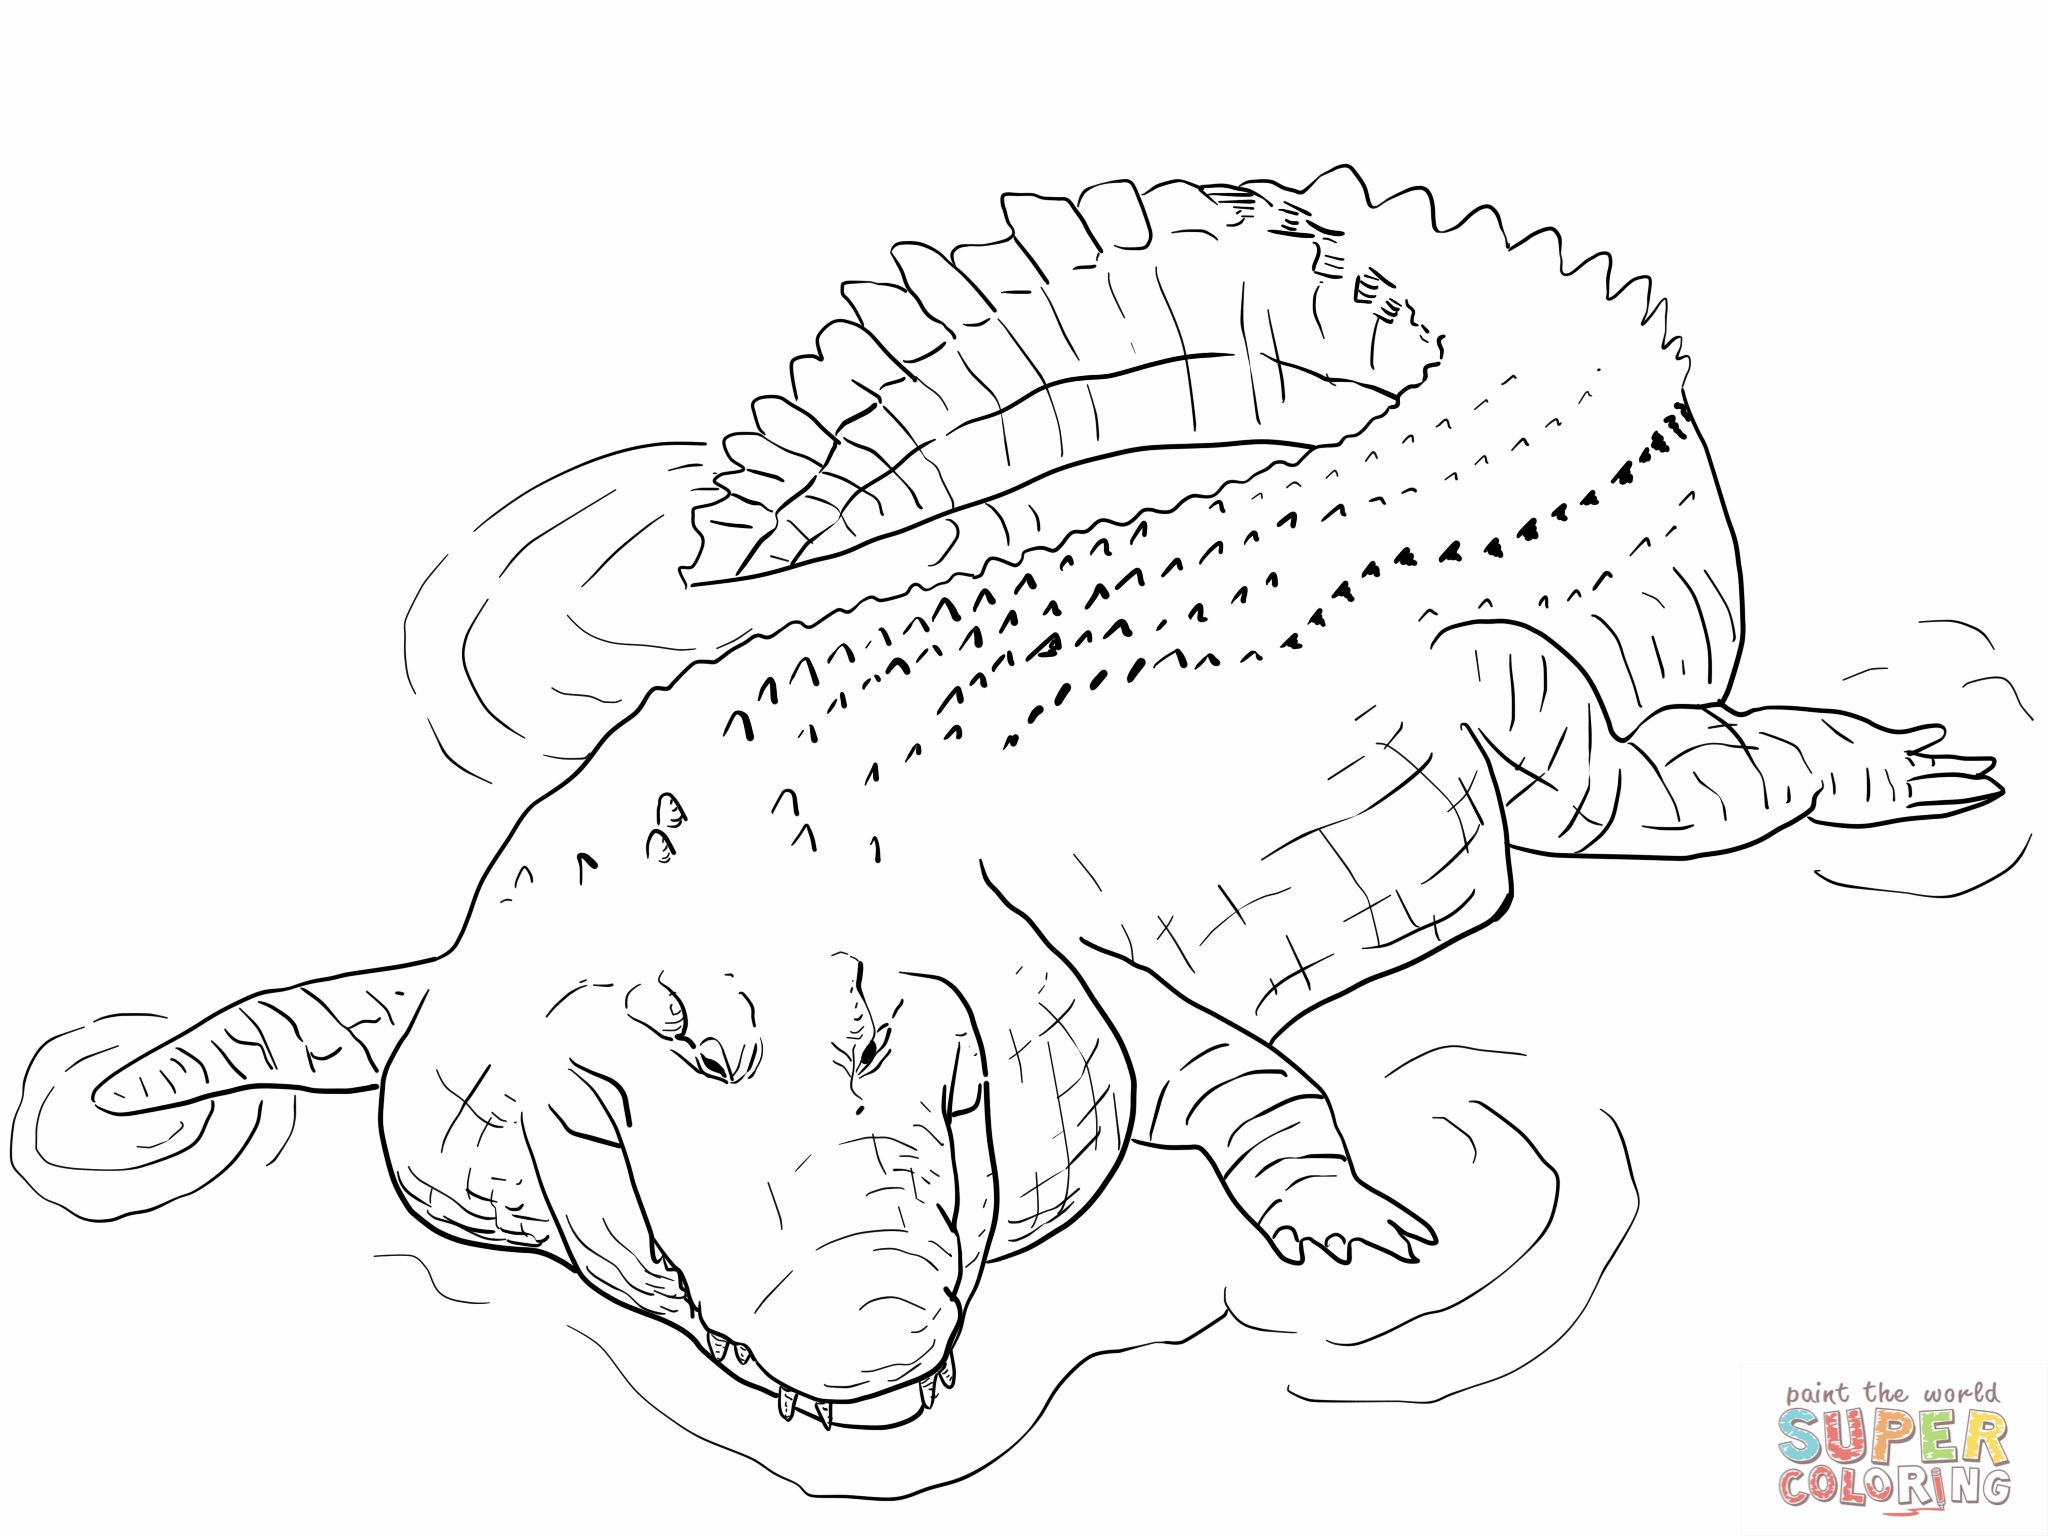 crocidile coloring pages for kids | Pin by Stephanie Tarrer on Animals!!!! | Coloring pages ...